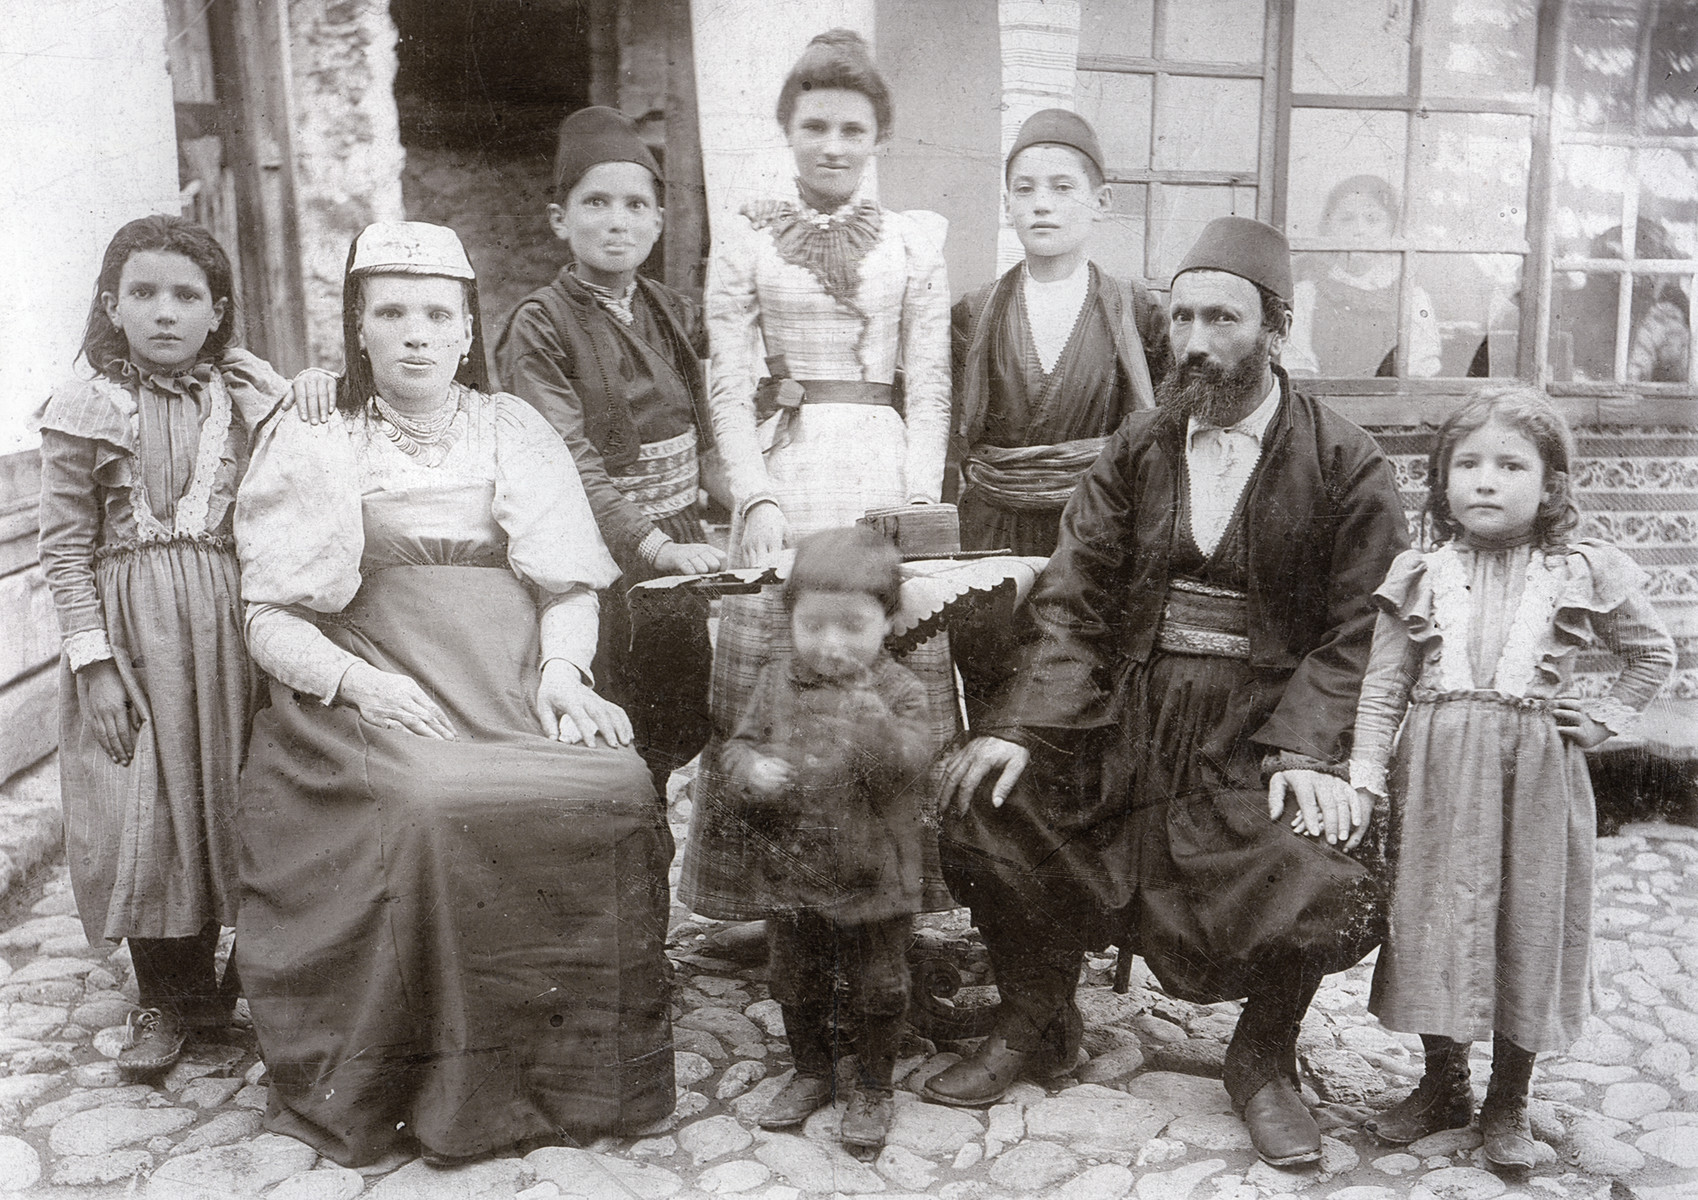 Prewar family portrait of the Kajon (Hajon) family.  Pictured are Sarah and Mordechai Kajon  (the great grandparents of donor)  with their children (from left to right): Simcha, Joseph, Esther, Izak, Leah (Lenka), and Elias (in the center).